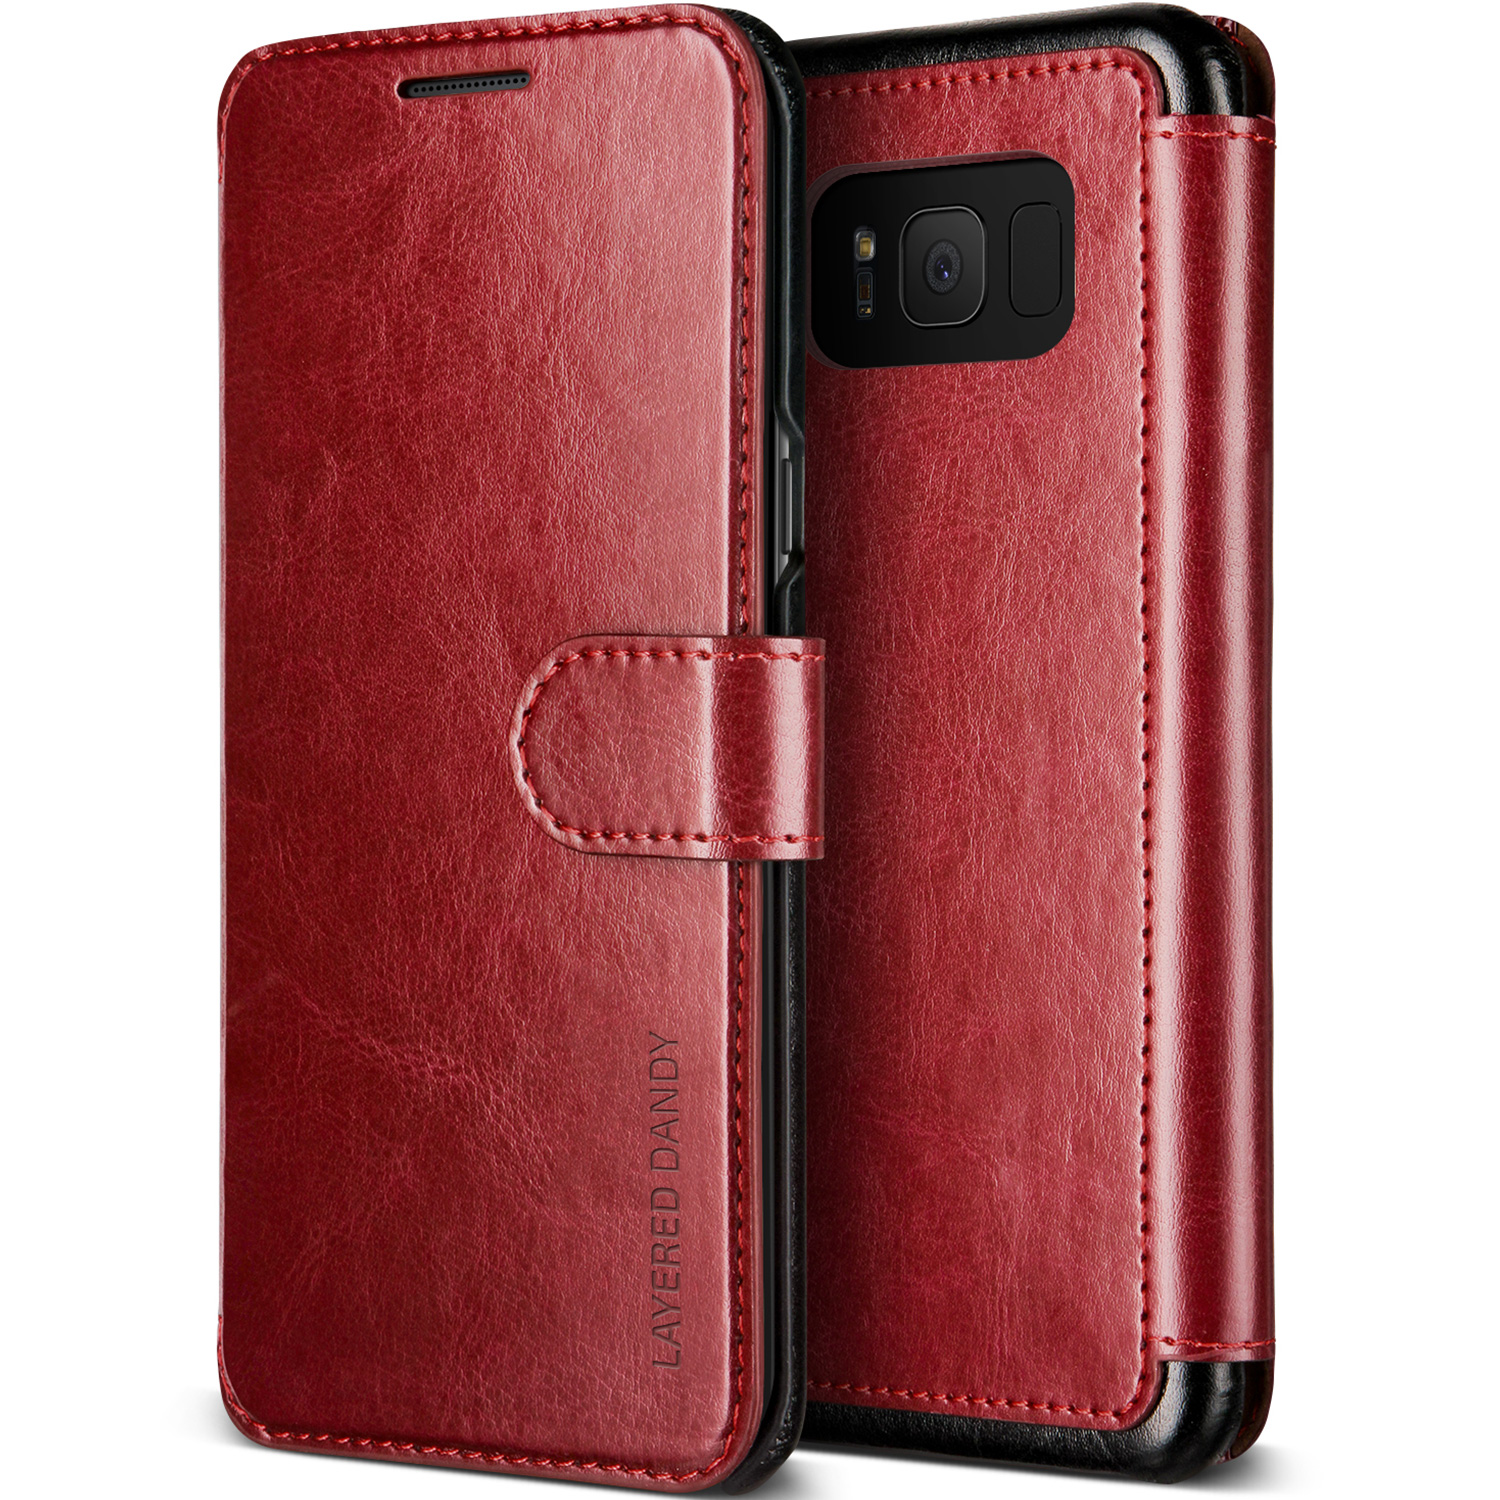 Samsung Galaxy S8 Plus Case Cover   Premium PU Leather Wallet with Card Slots   VRS Design Layered Dandy for Samsung Galaxy S8 Plus